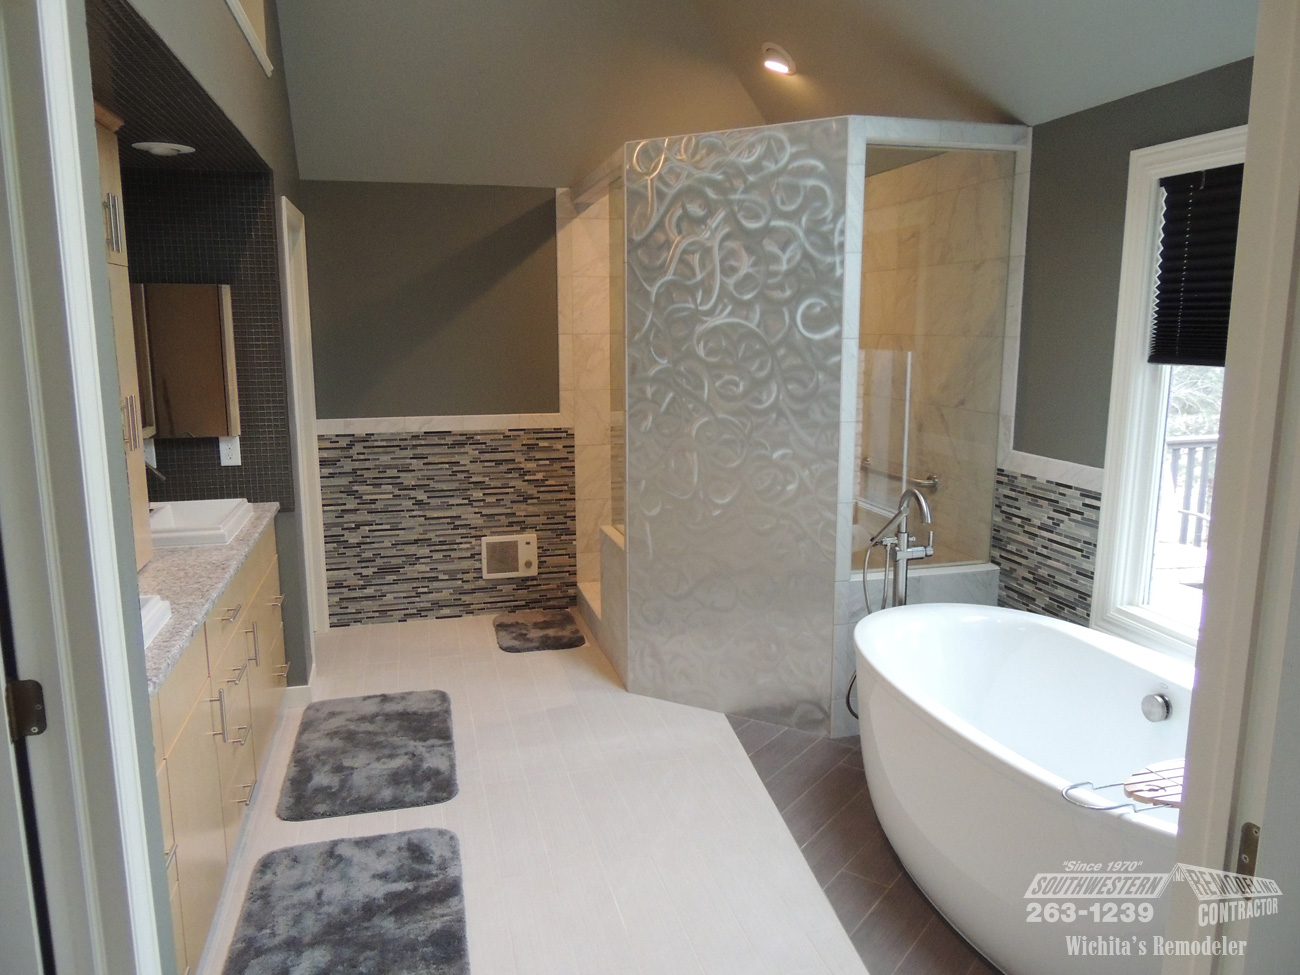 Bathroom Remodel Wichita Ks bathroom remodeling pics best 25+ bathroom remodeling ideas on